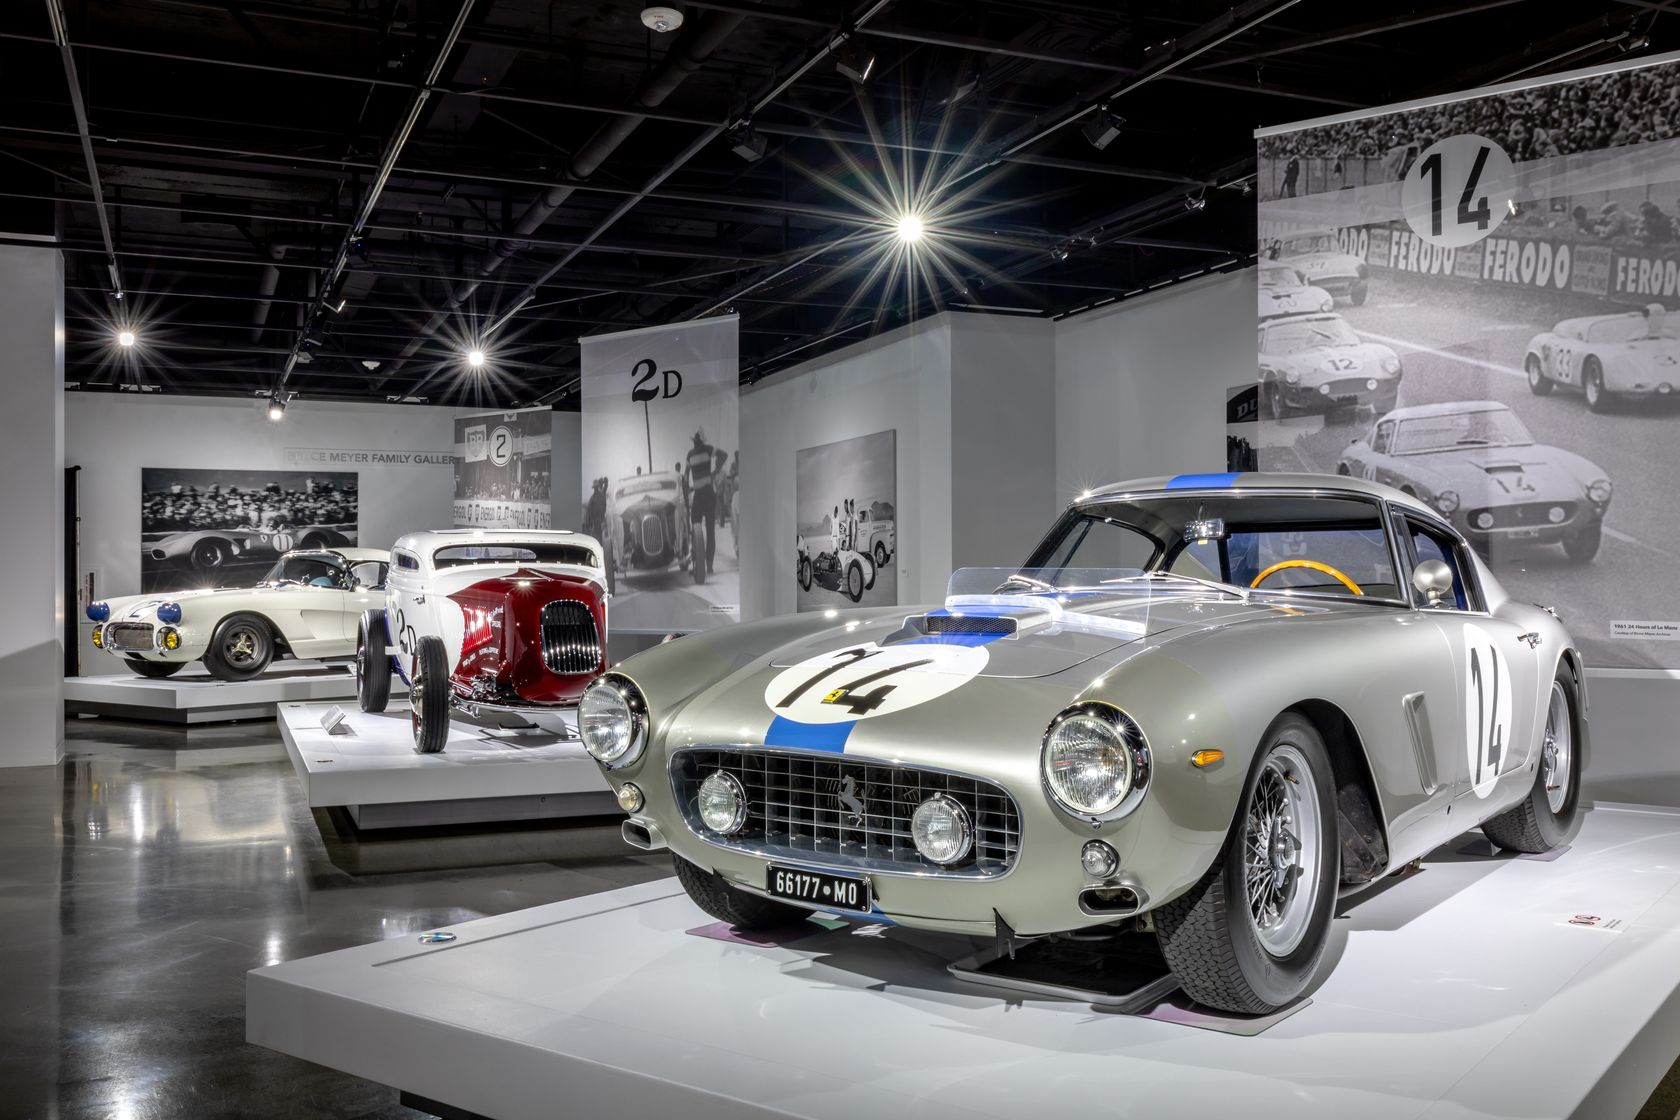 Rolex Sponsors an Exhibition of the World's Top Race Cars in Los